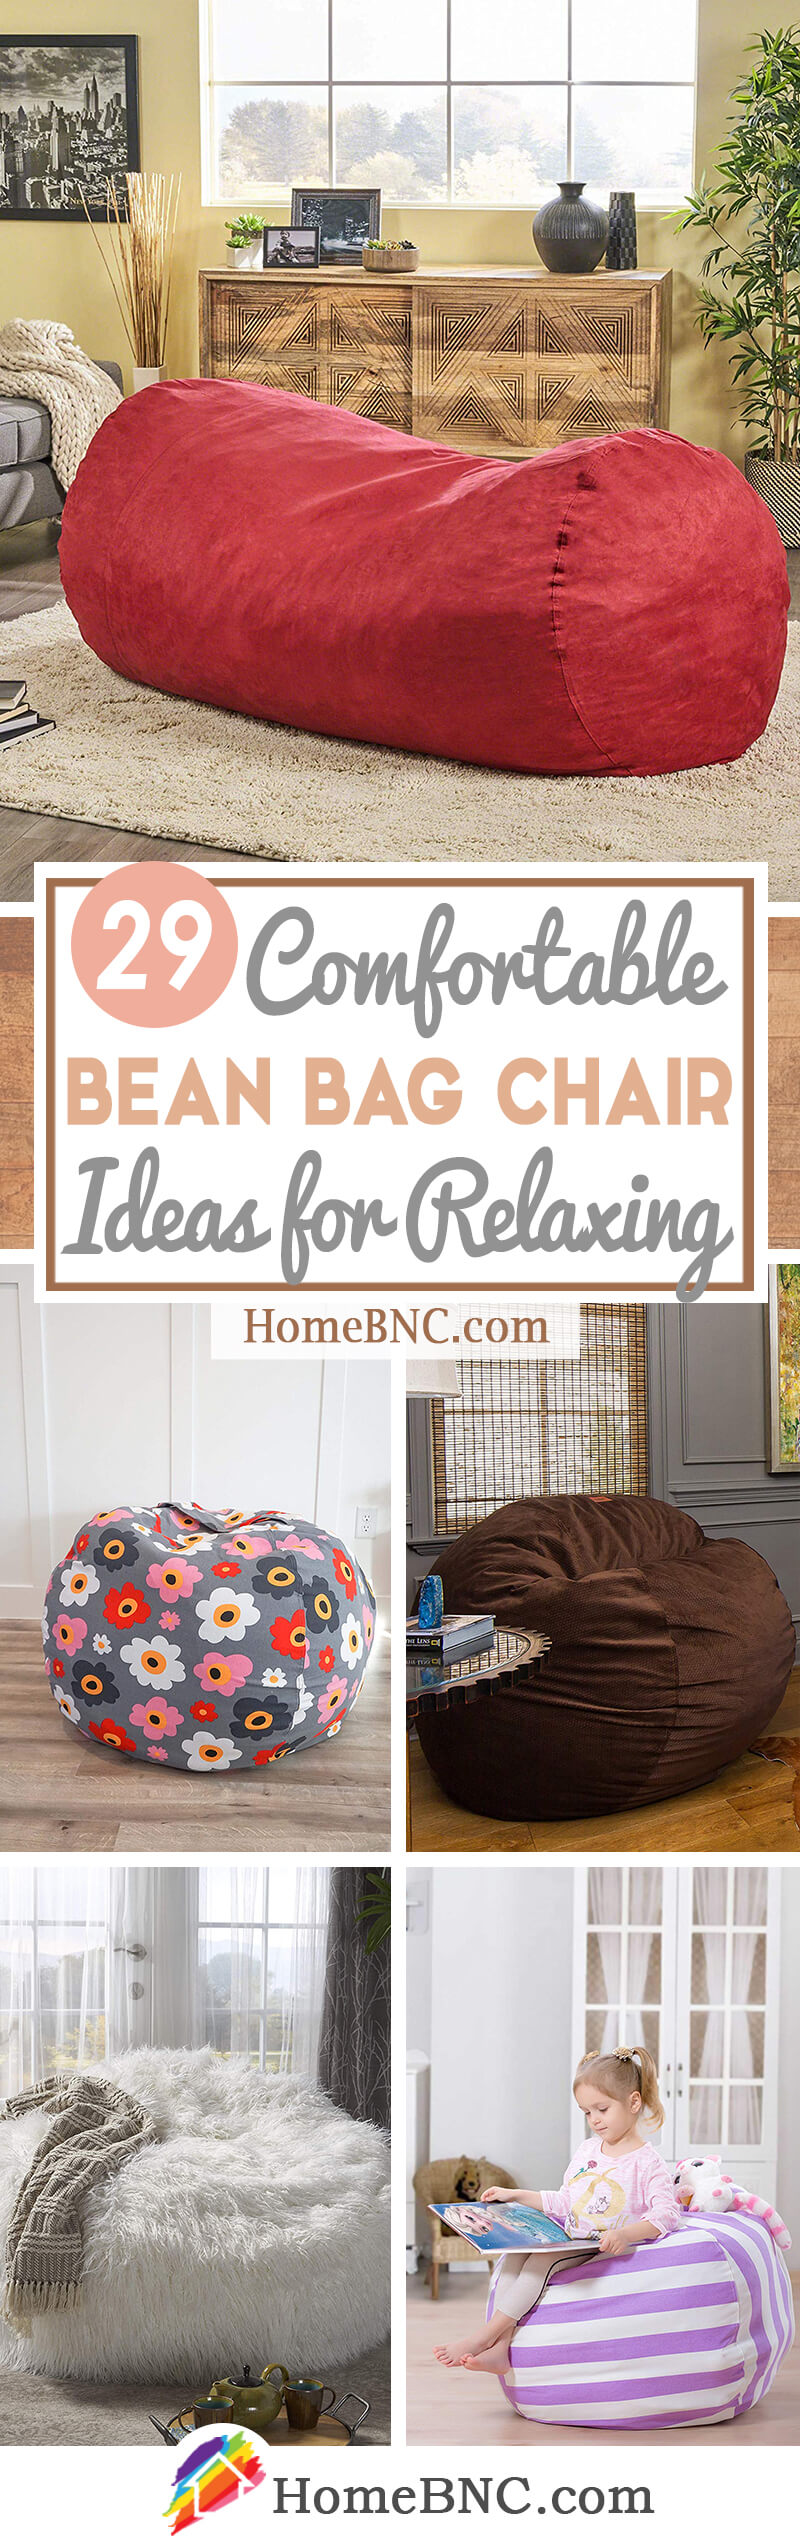 Bean Bag Chair Ideas